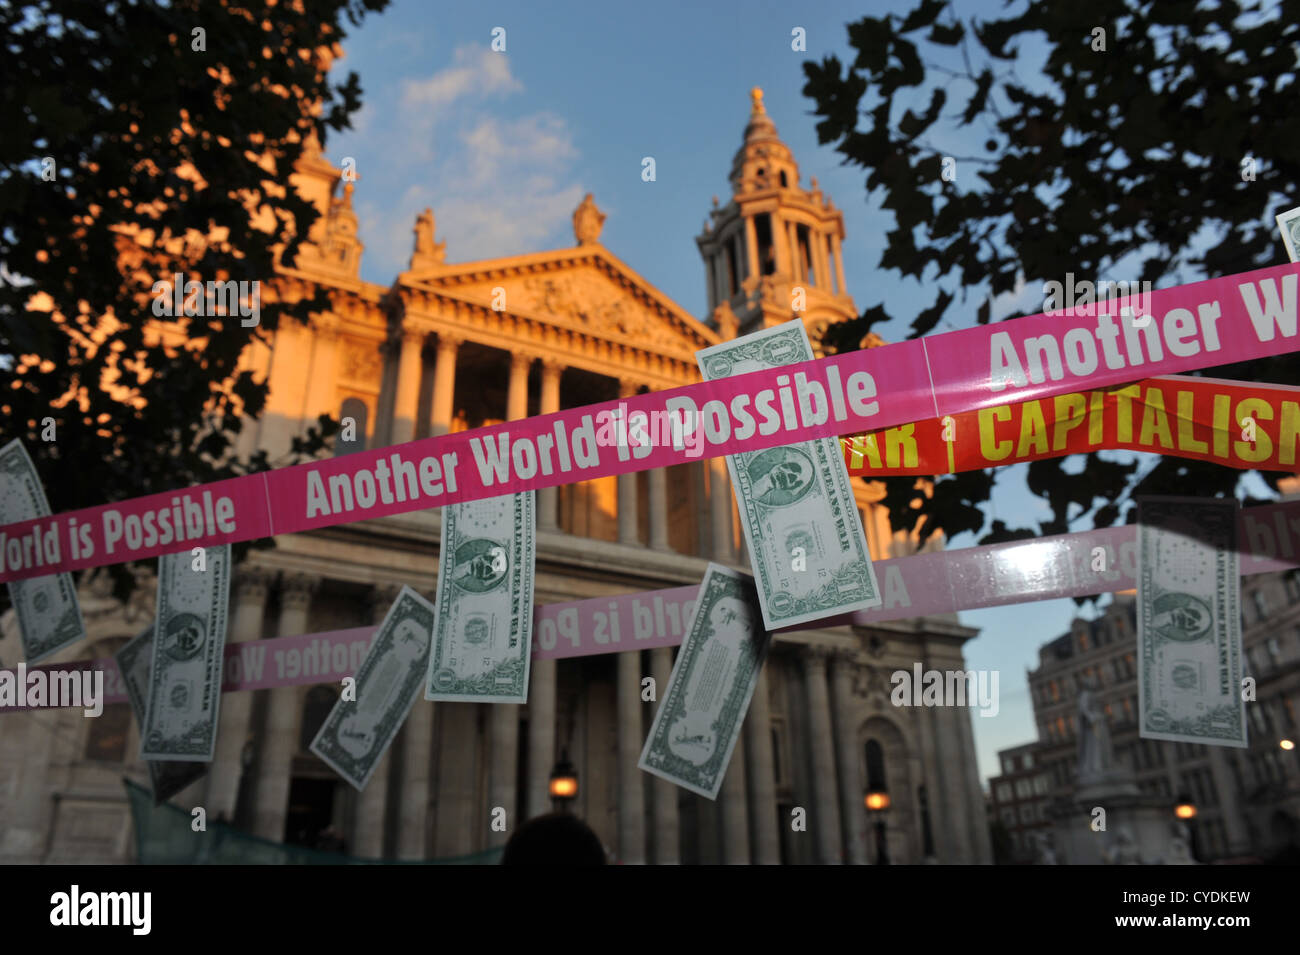 'Capitalism means War,Anti-Globalisation,Occupy.War,'Another world is possible' - Stock Image